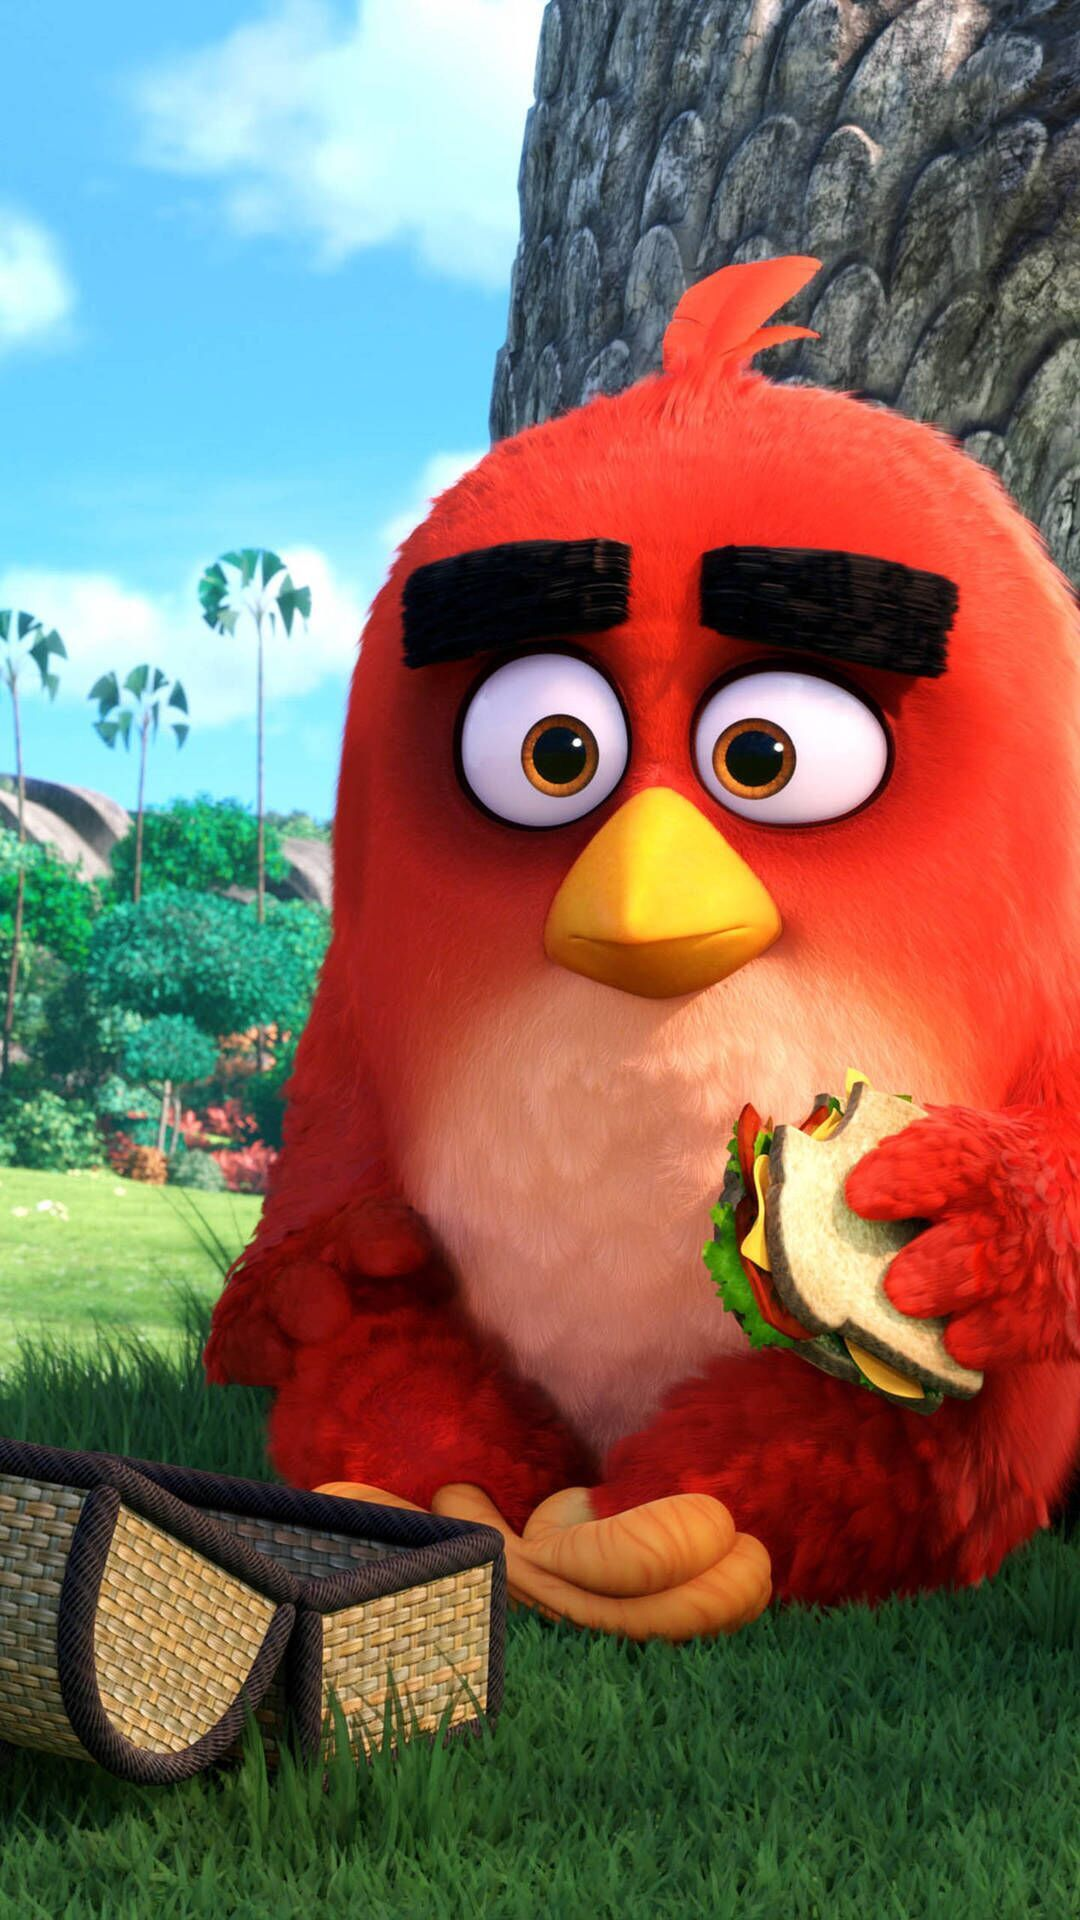 Angry Bird Angry Bird Pictures Angry Birds Movie Bird Wallpaper